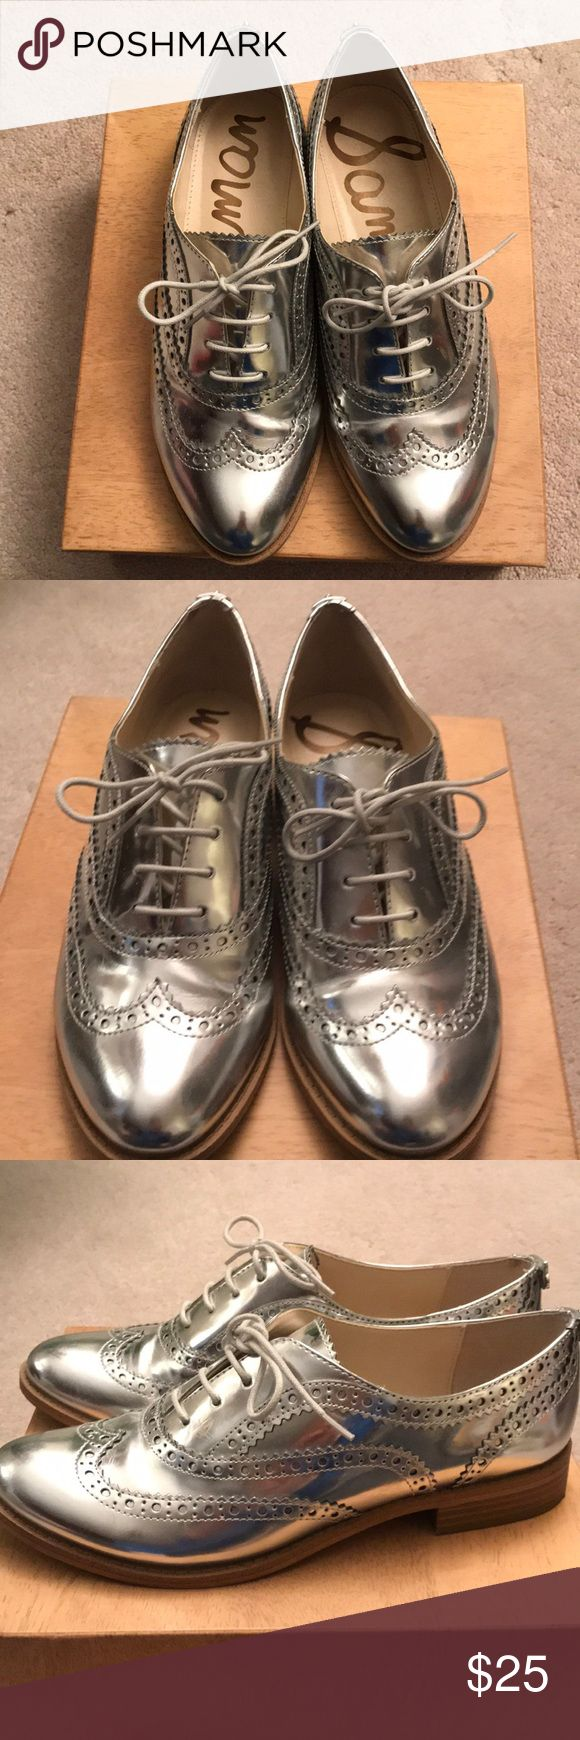 Sam Edelman Silver Mettalic Oxford Loafers Sam Edelman Silver Metallic Oxford Loafers. Gently worn a few times. Has tiny scuffs but can be cleaned with shoe cleaner. Heel height approx 1 inch.  Comes from pet and smoke free home. Thanks for looking! Sam Edelman Shoes Flats & Loafers #loafersoxford